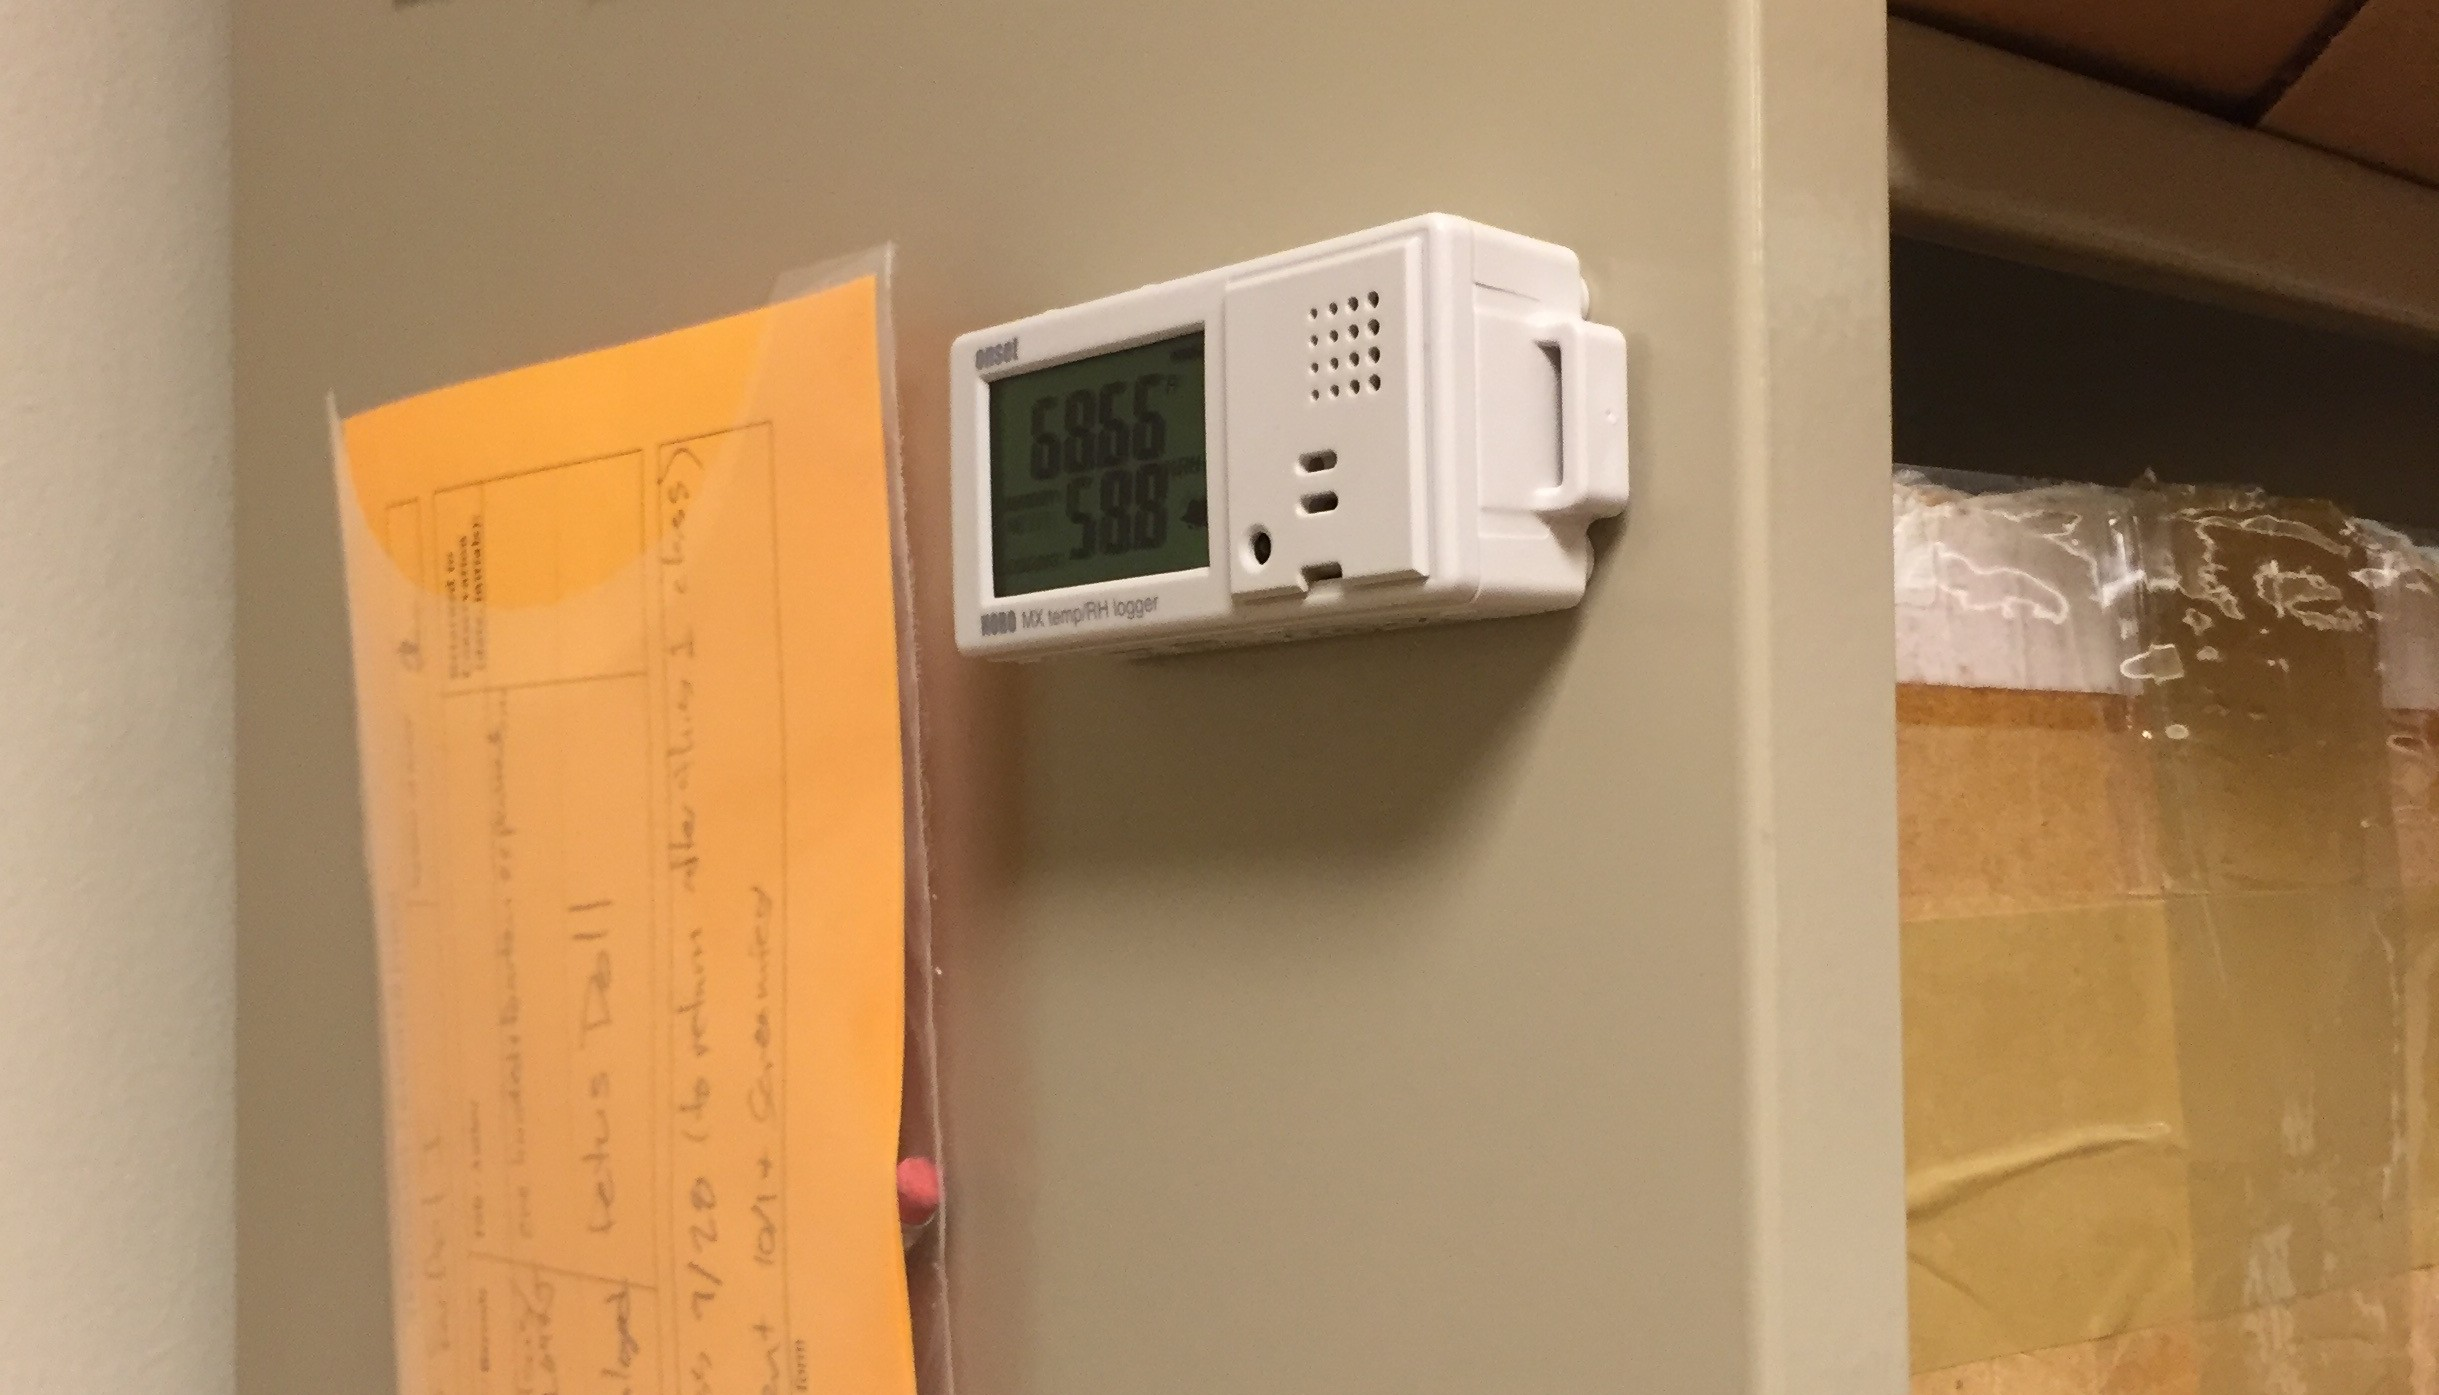 The magnets make this data logger easy to mount on nearby metal surfaces, like library shelving.